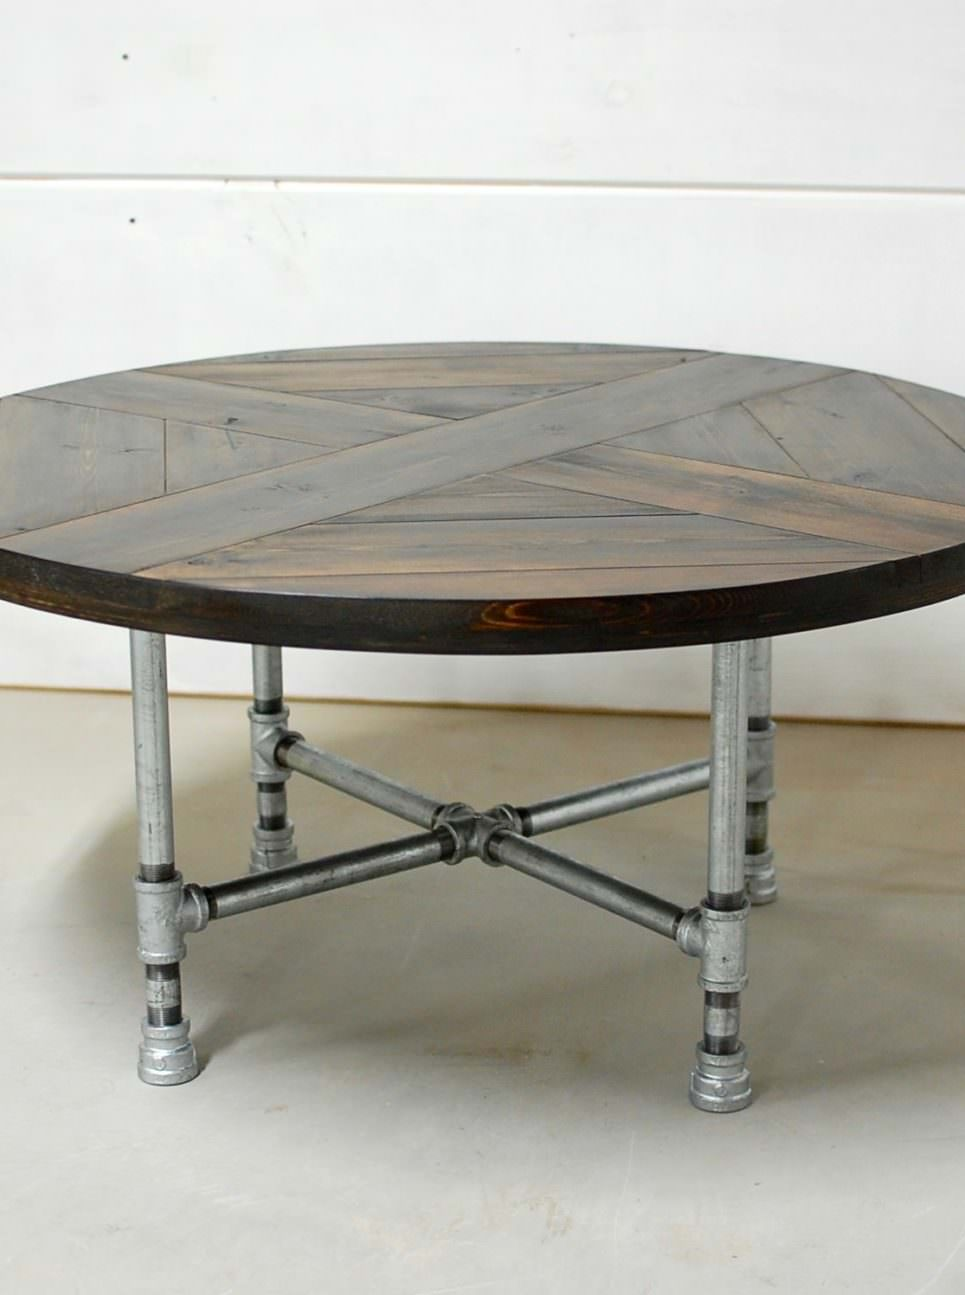 Rachela Industrial Pipe Table. Rachela Industrial Coffee Table